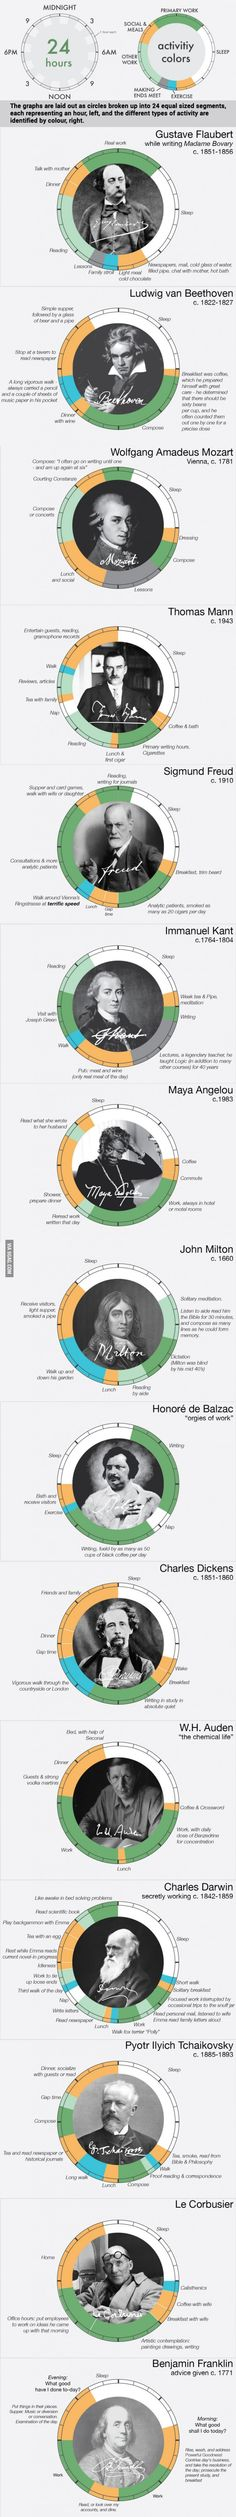 How These 15 History's Biggest Thinkers Spent Their Days